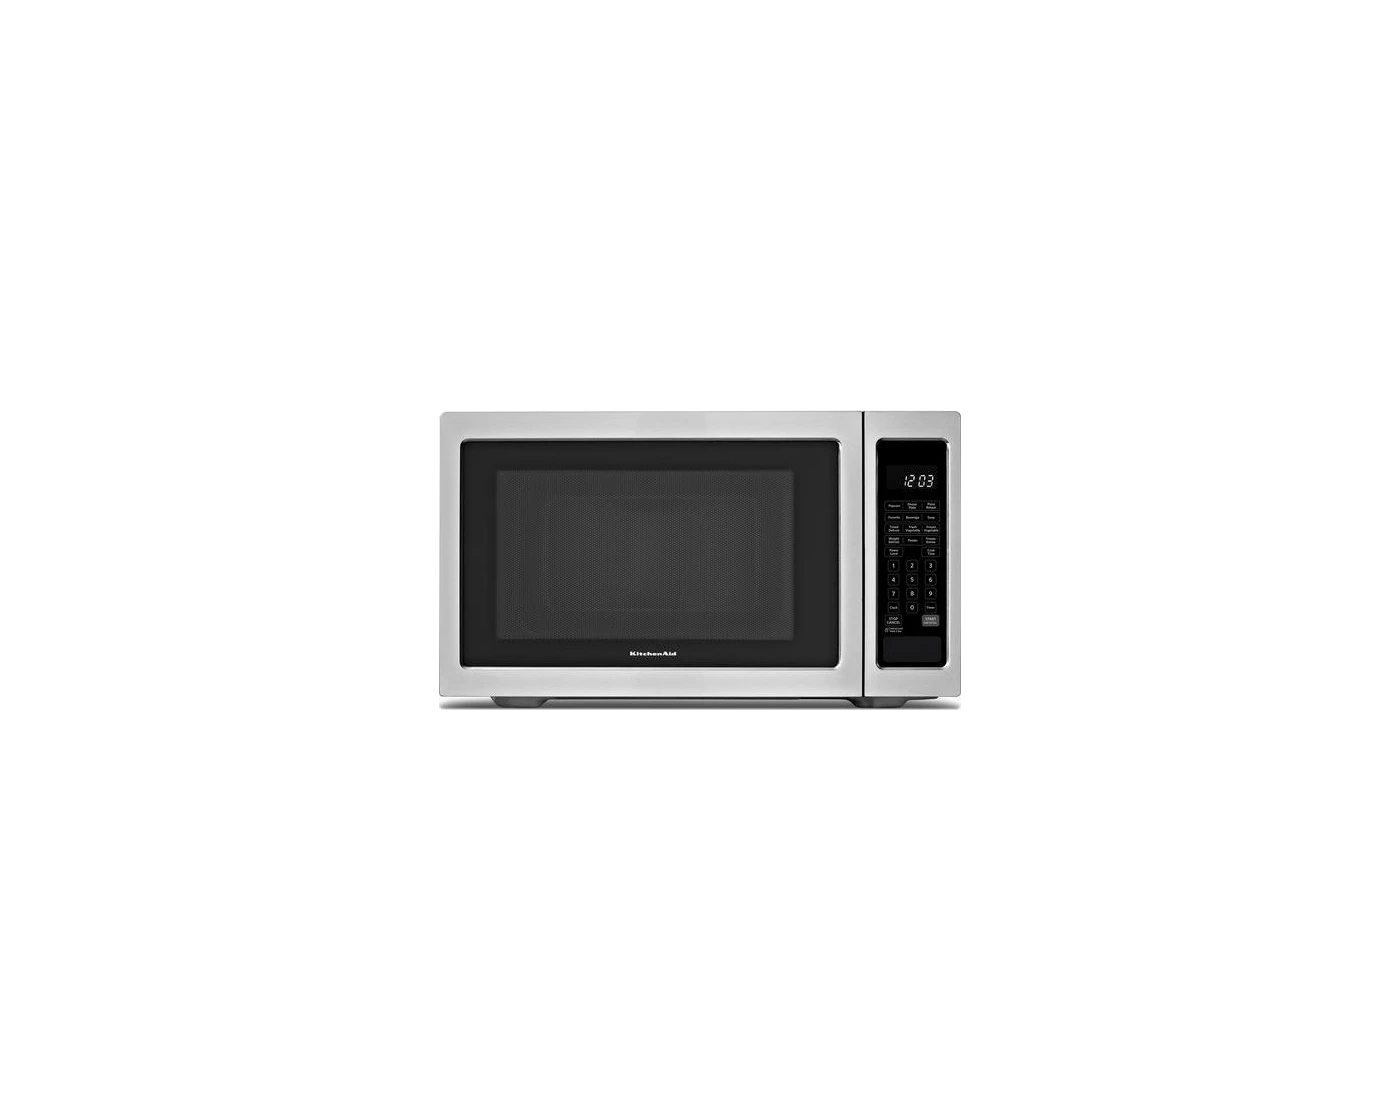 kcms1655bss by kitchenaid countertop microwaves goedekers com